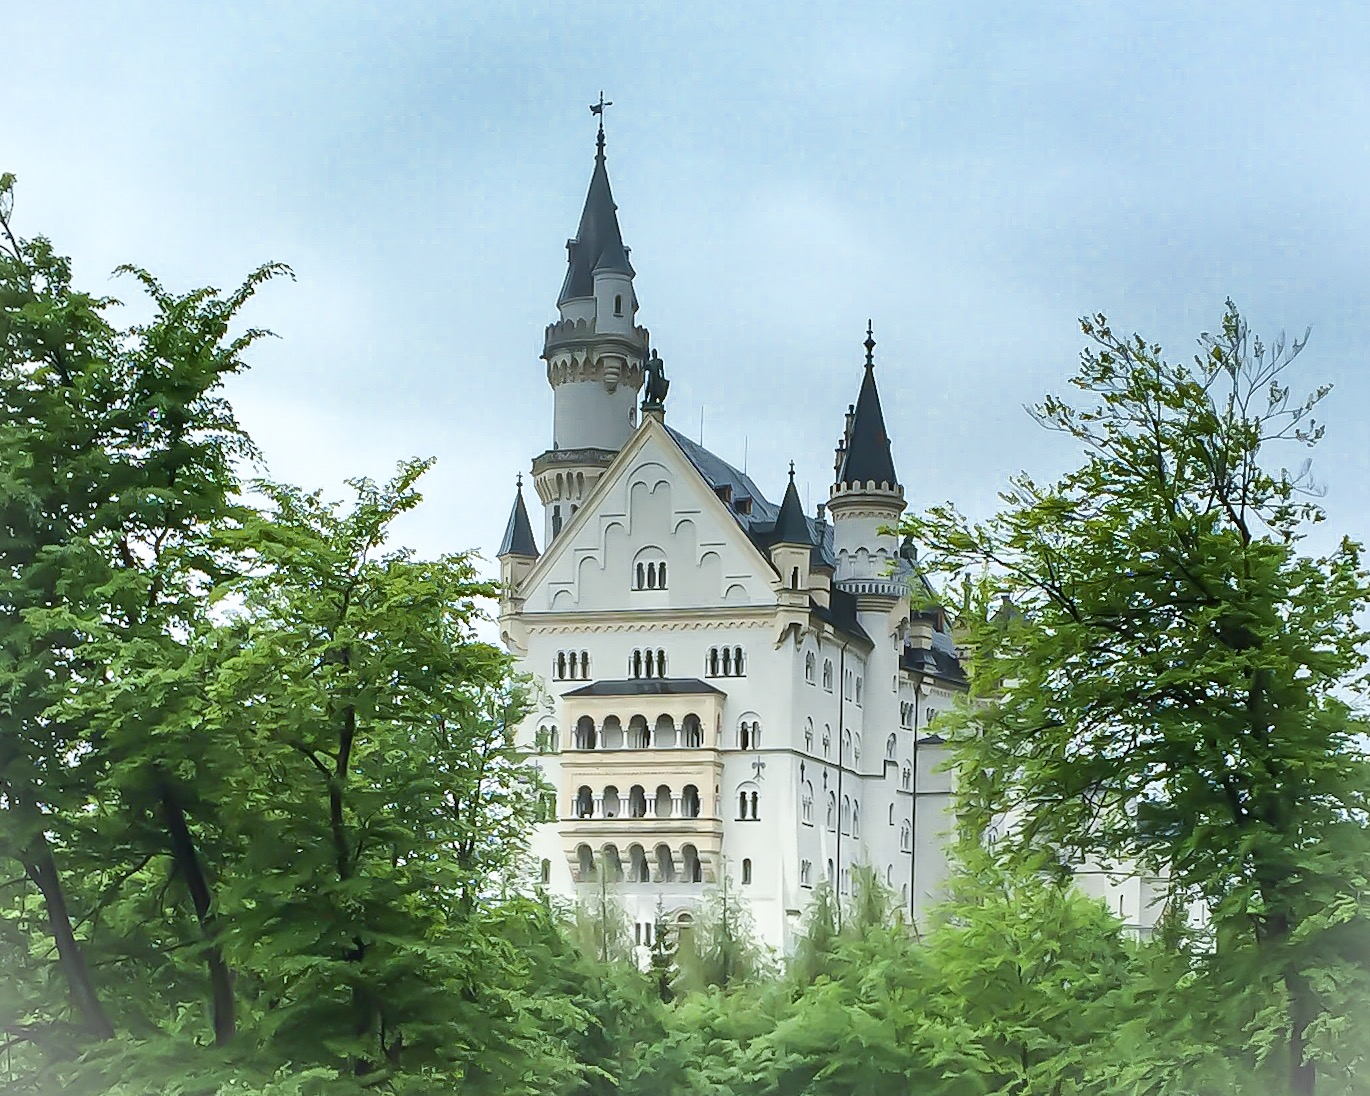 How to Travel the World 2020 - Virtual Tour of  Neuschwanstein Castle - Giddy Guest